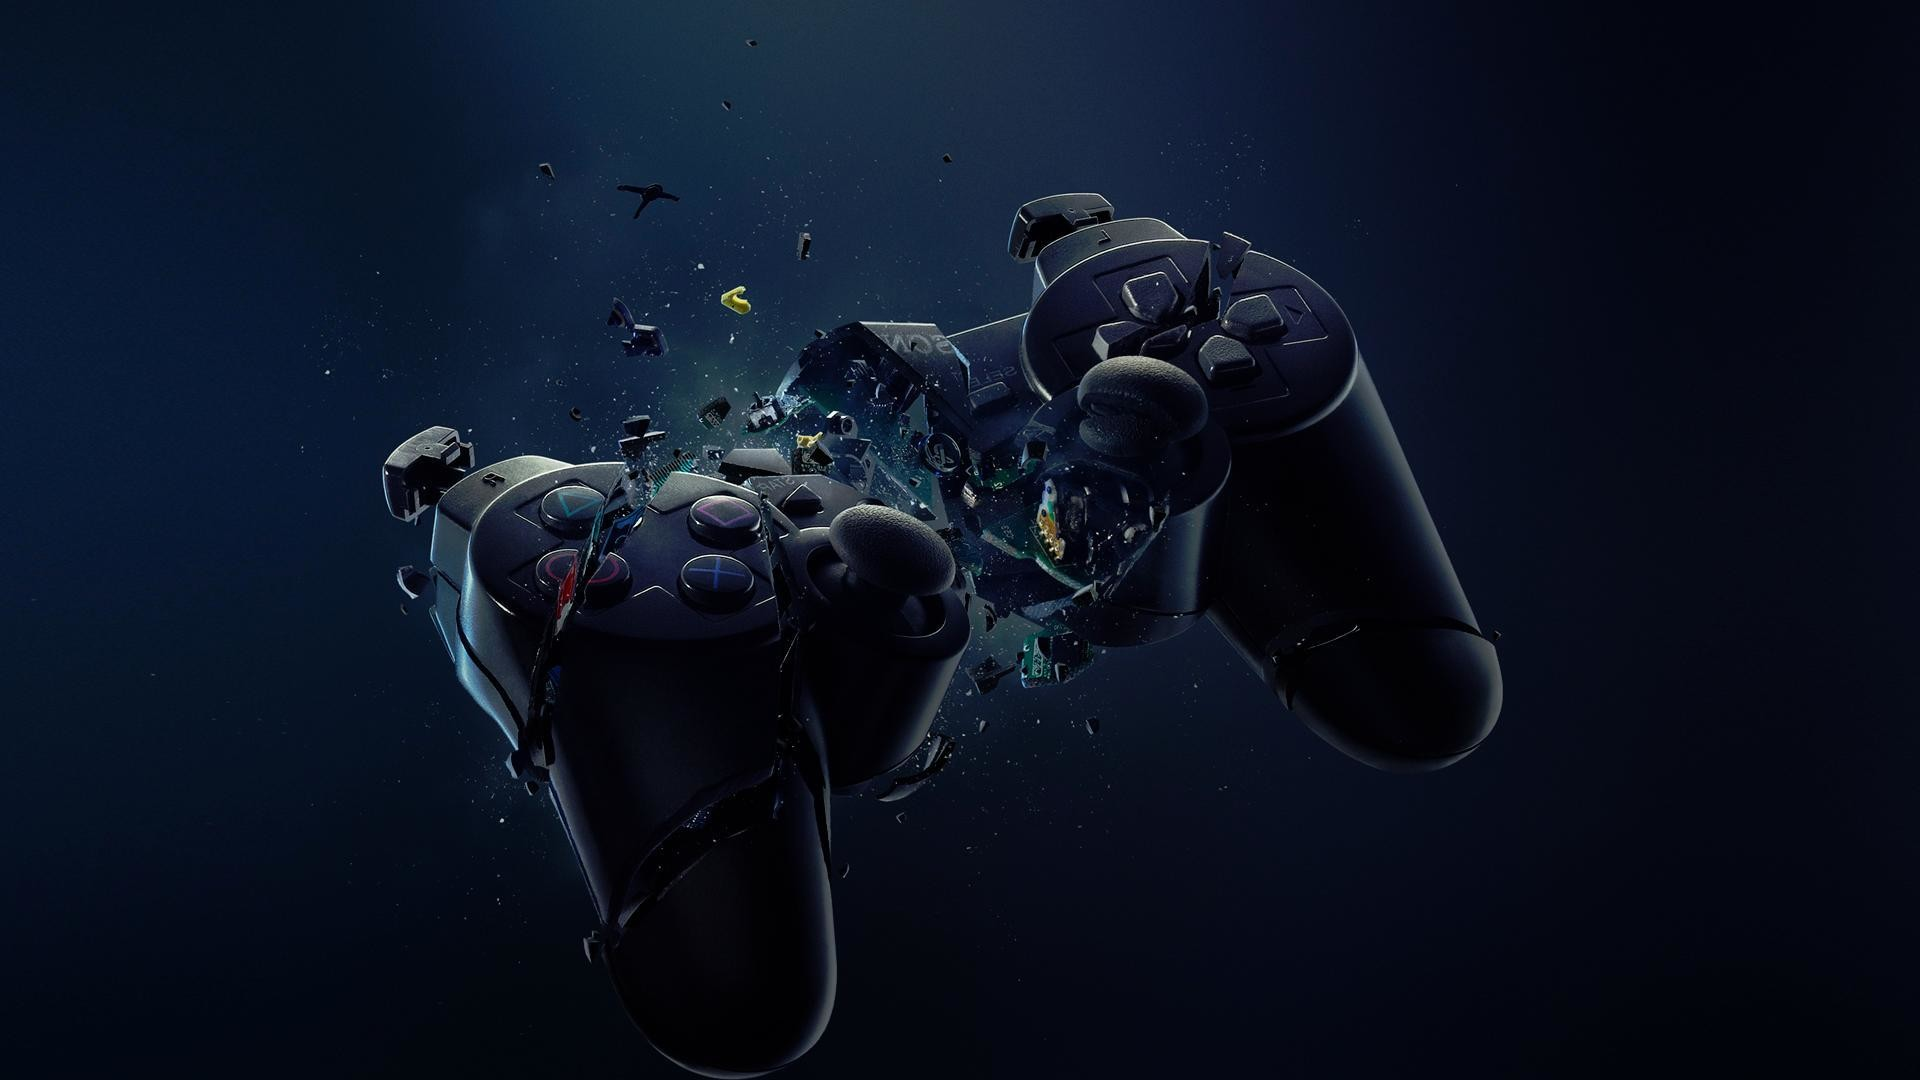 Wallpapers For > Playstation Wallpaper Hd